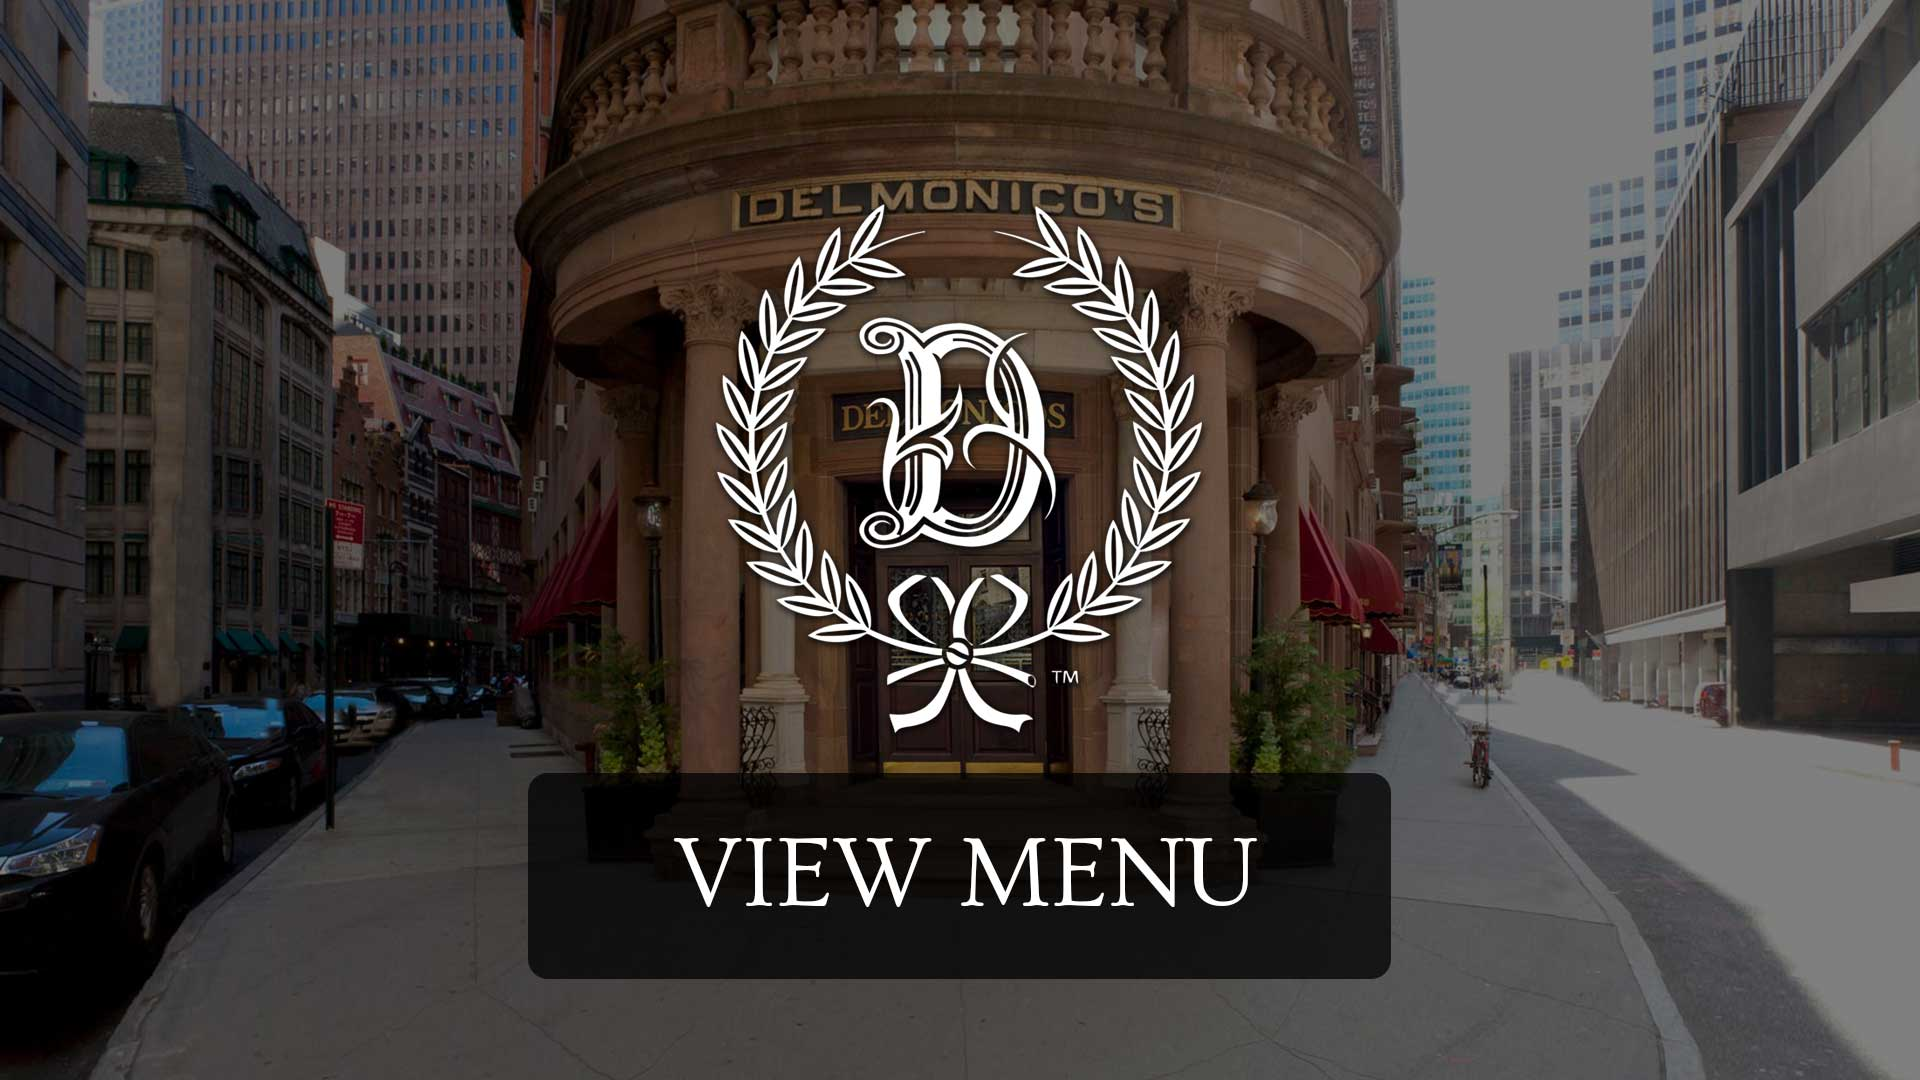 Delmonicos Steak House NYC 10004 | Award Winning First Fine